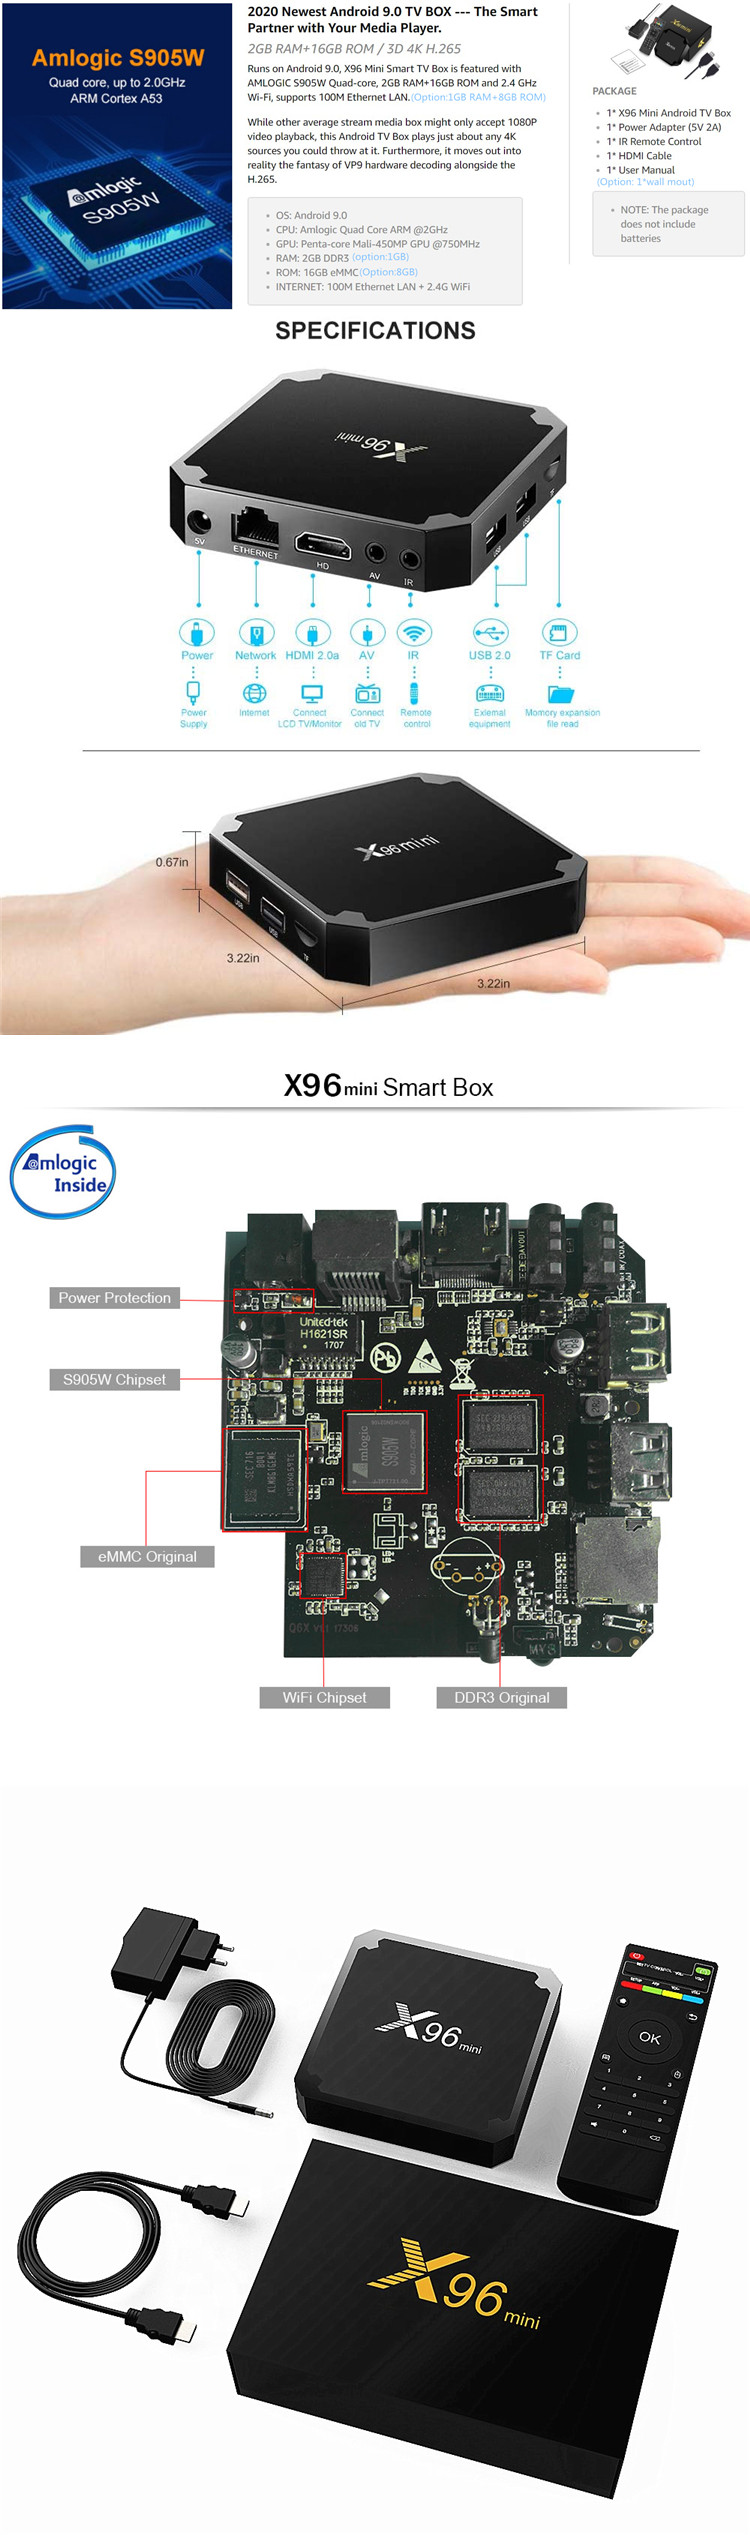 MINI Android TV box X96 mini s905w 1G8G android 9.0 customized launcher supported android OEM TV box